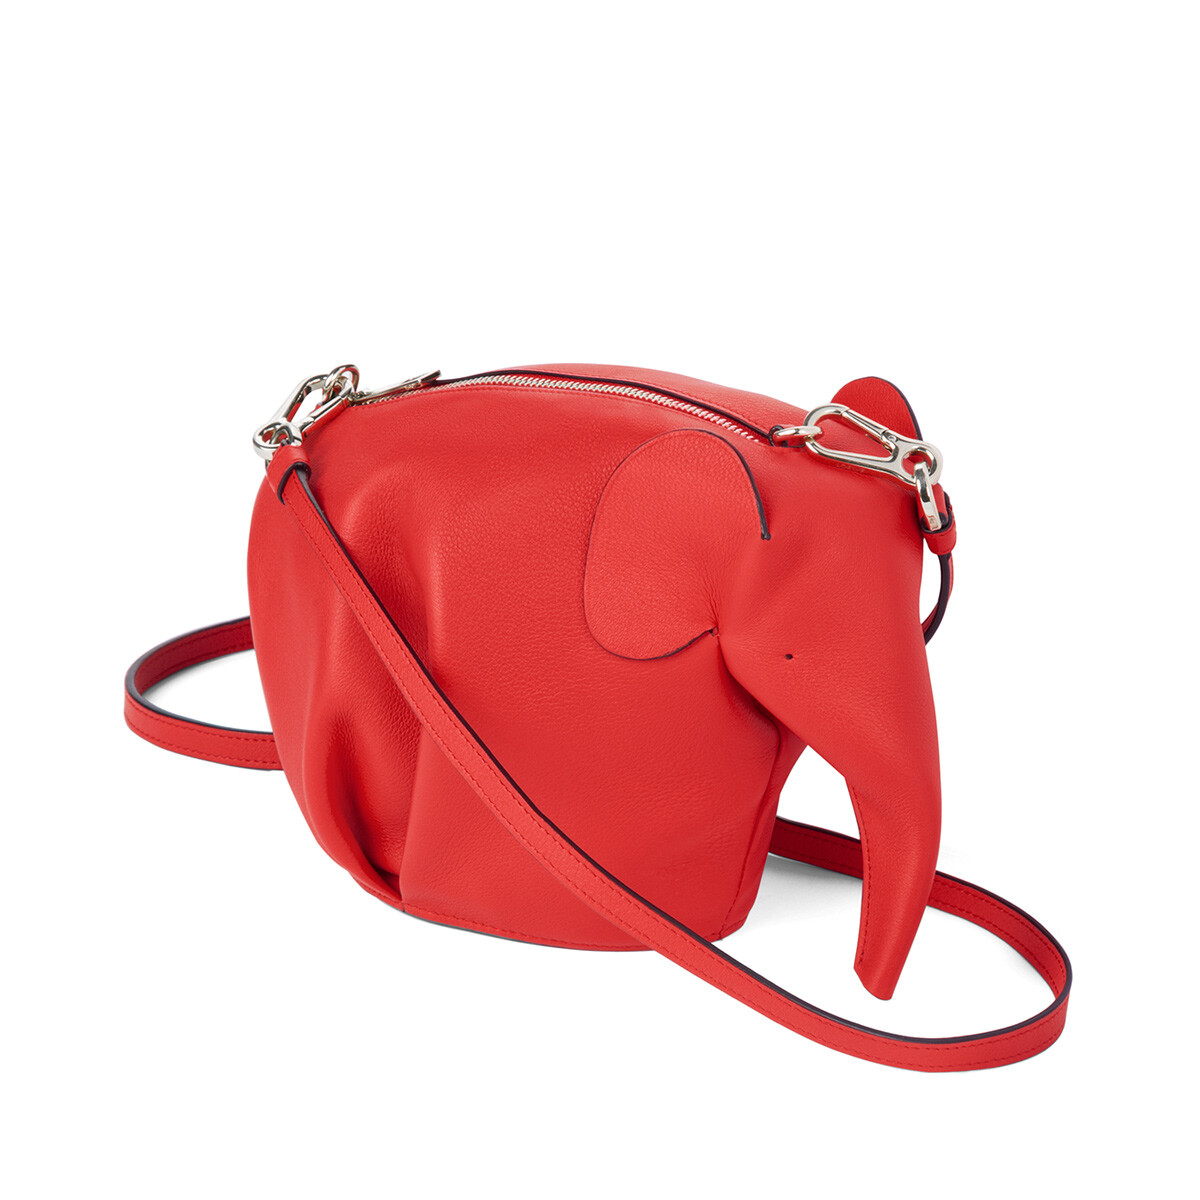 LOEWE エレファントミニバッグ スカーレットレッド front